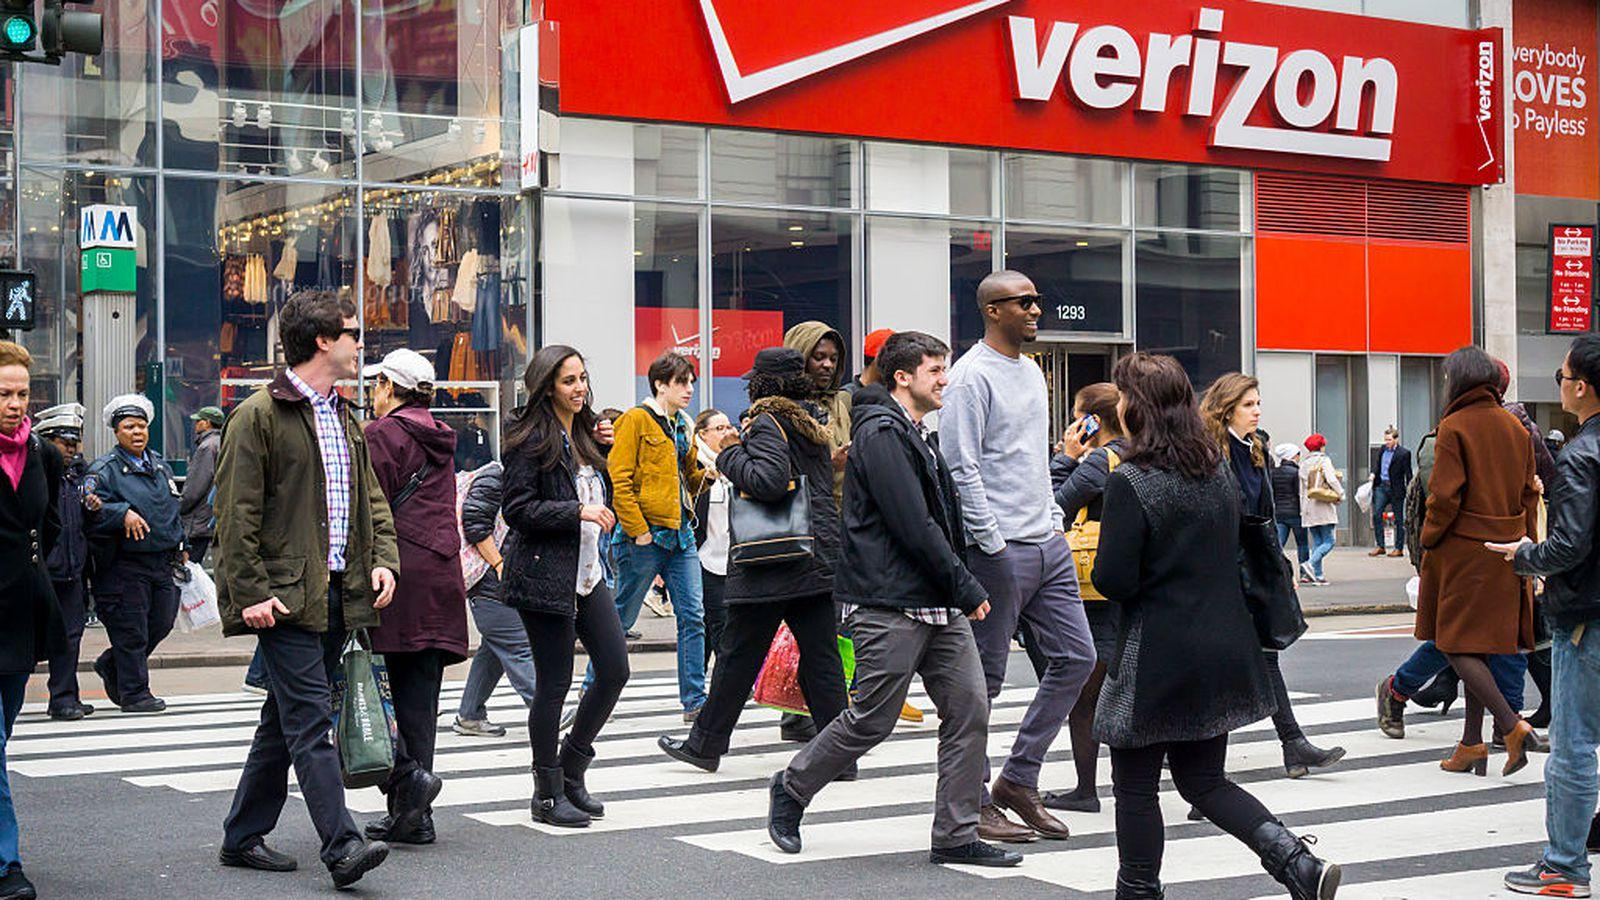 Commonwealth Financial Services LLC Sells 2040 Shares of Verizon Communications Inc. (VZ)